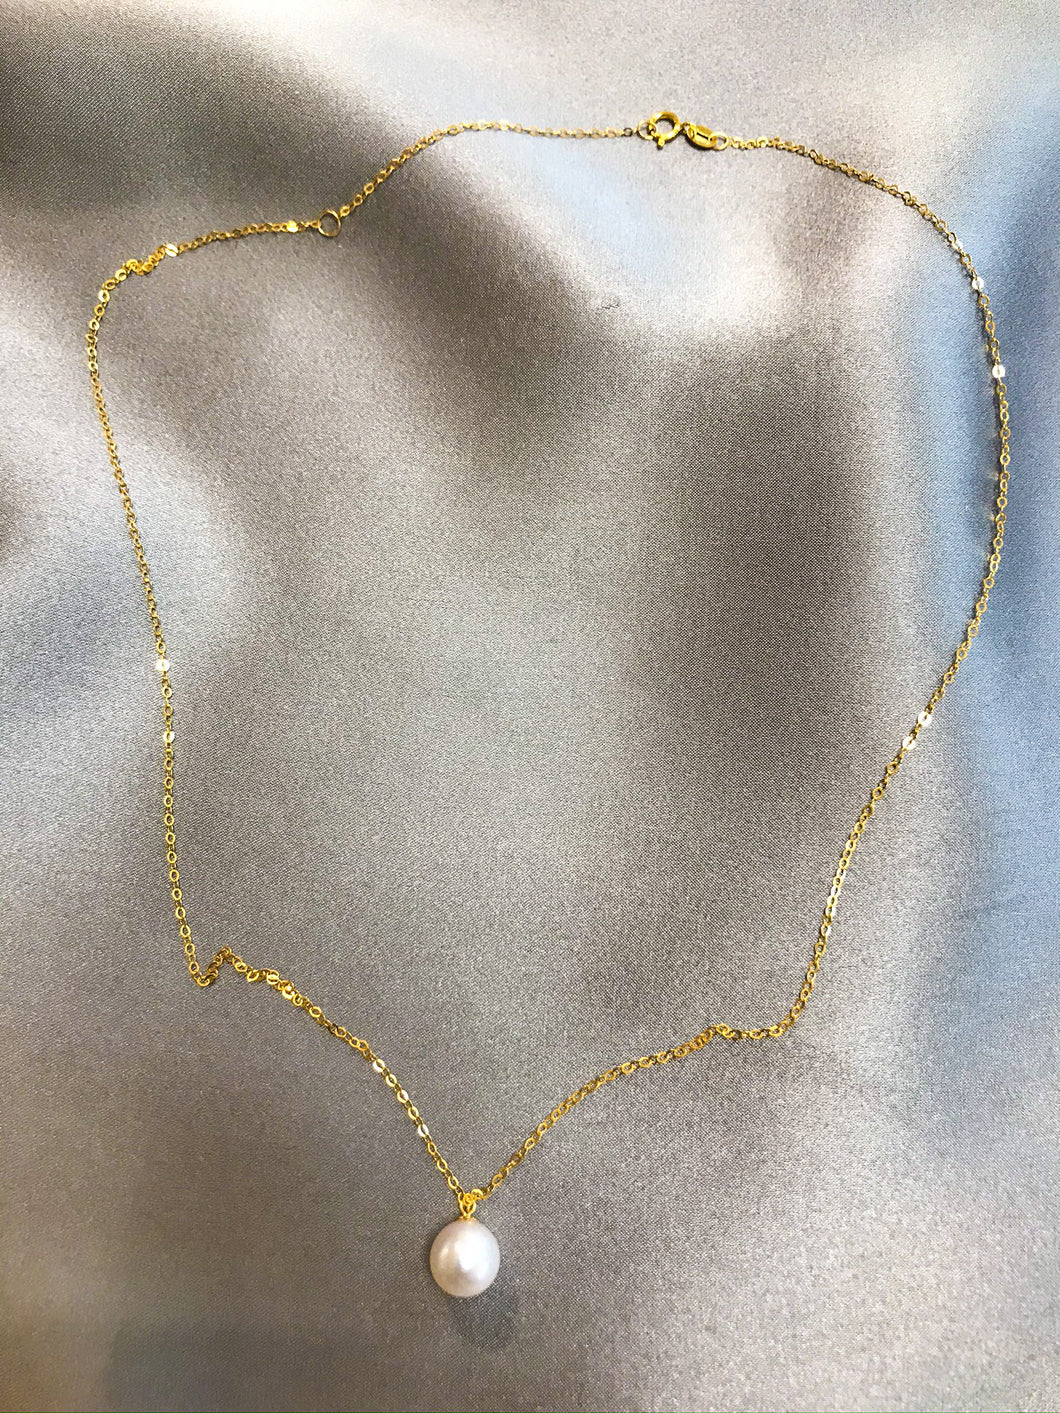 Issa - Japanese Akoya Salt Water Pearl Necklace with 18K Gold Chain